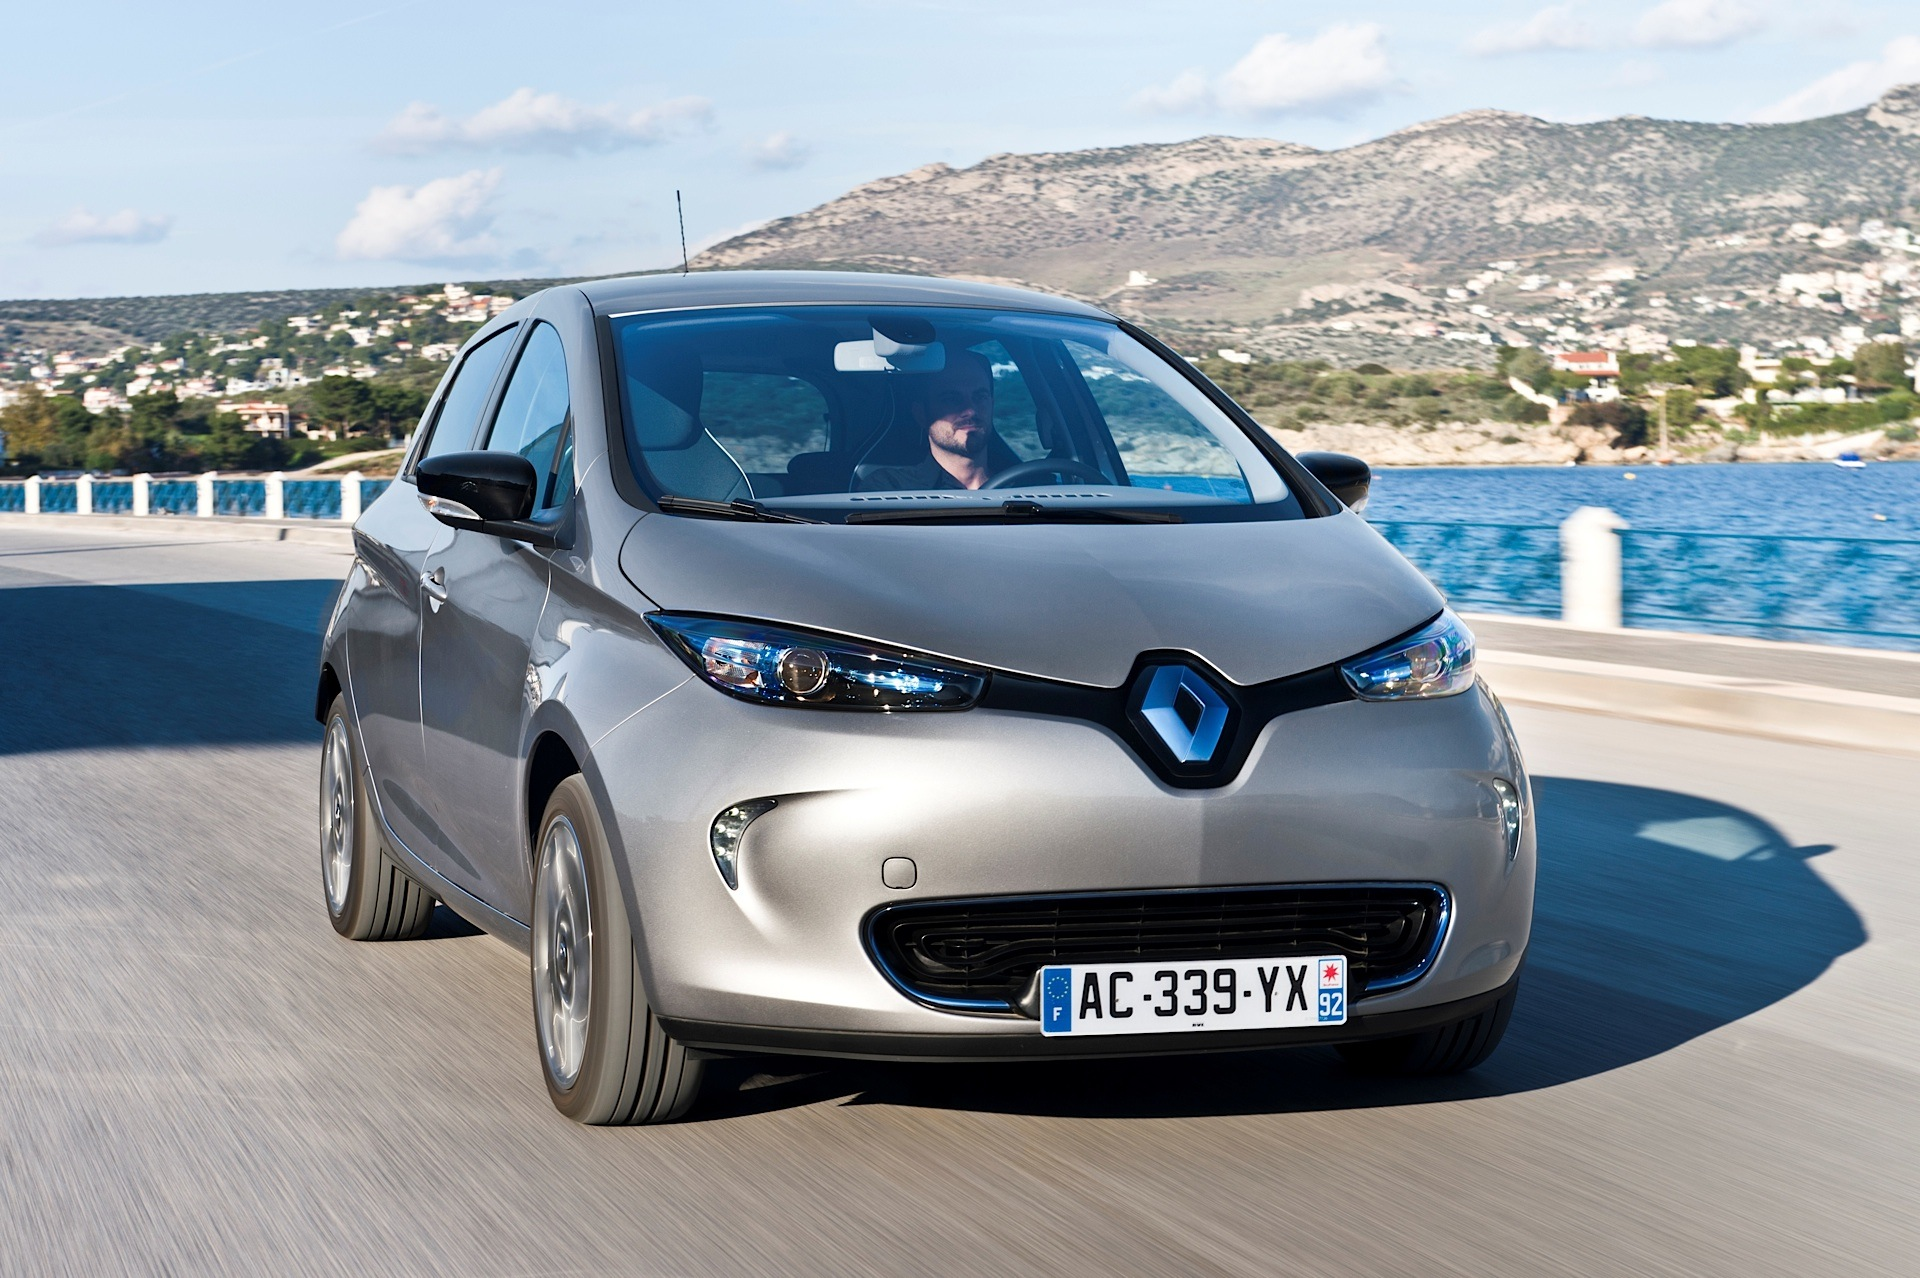 renault zoe recalled over braking system issue autoevolution. Black Bedroom Furniture Sets. Home Design Ideas